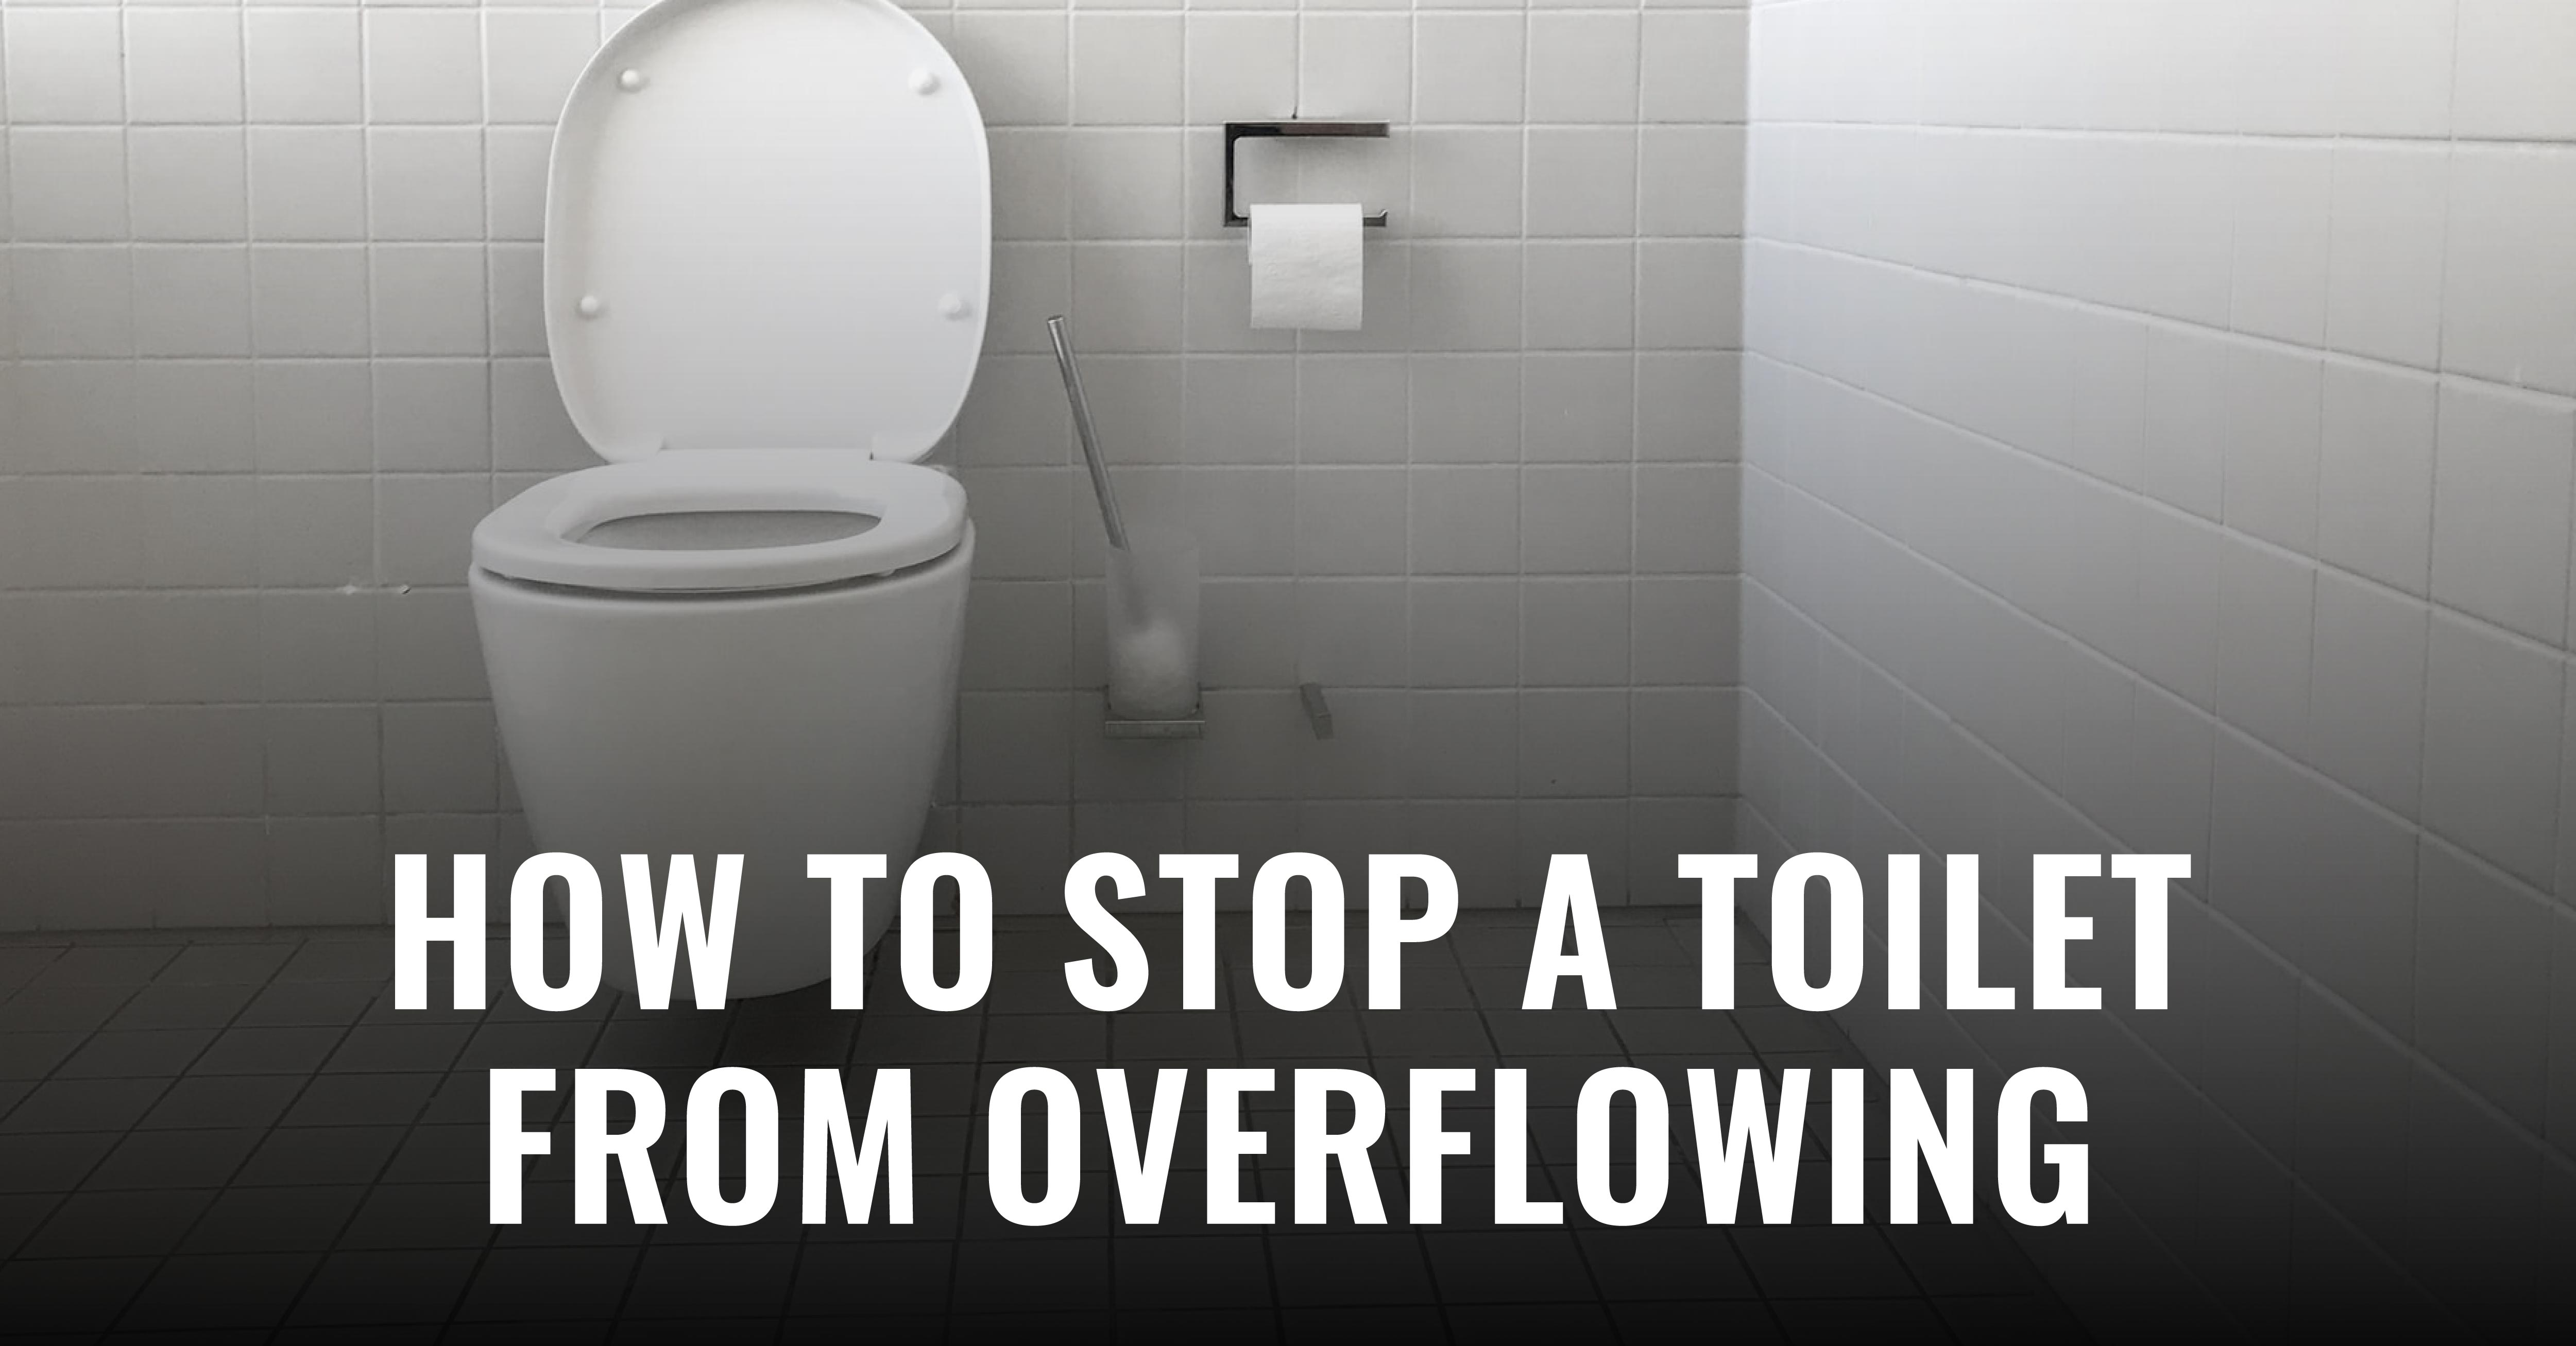 Got a clogged toilet? Well, this blog post has a step-by-step guide on how to prevent your toilet from overflowing. Now, read it quickly - you don't have much time to lose!